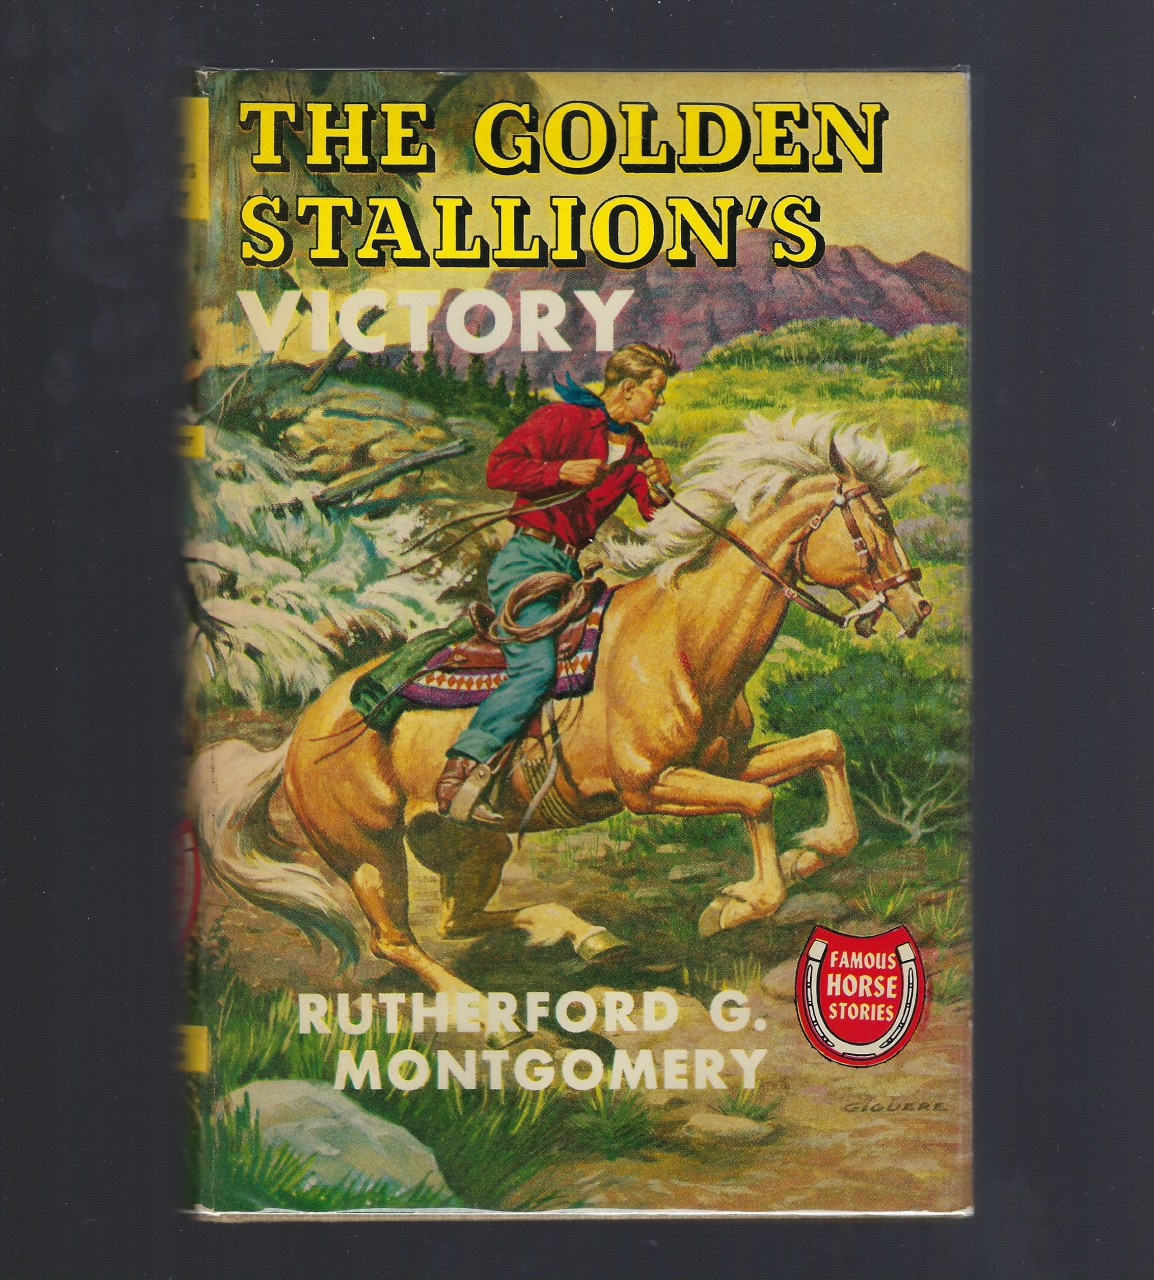 The Golden Stallion's Victory (Famous Horse Stories) HB/DJ Rutherford Montgomery, Rutherford G. Montgomery; George Giguere [Illustrator]